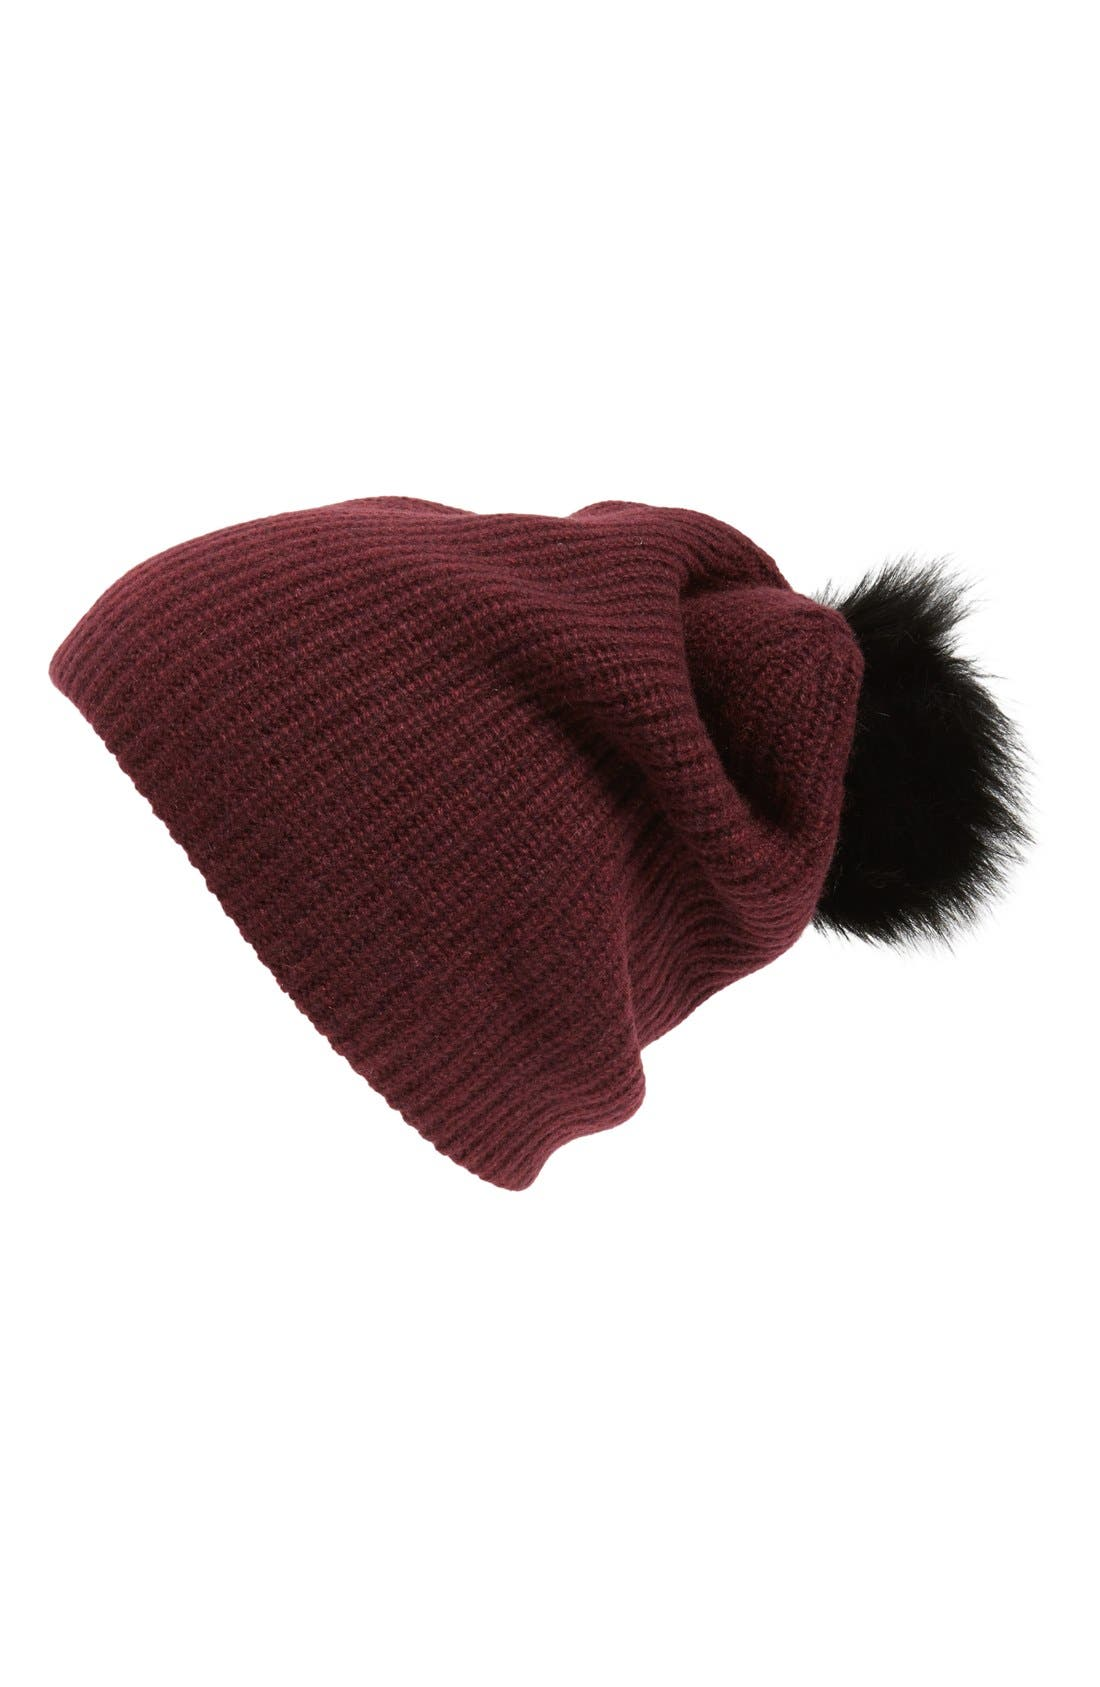 Main Image - rag & bone 'Cynthia' Cashmere & Wool Beanie with Genuine Shearling Pompom